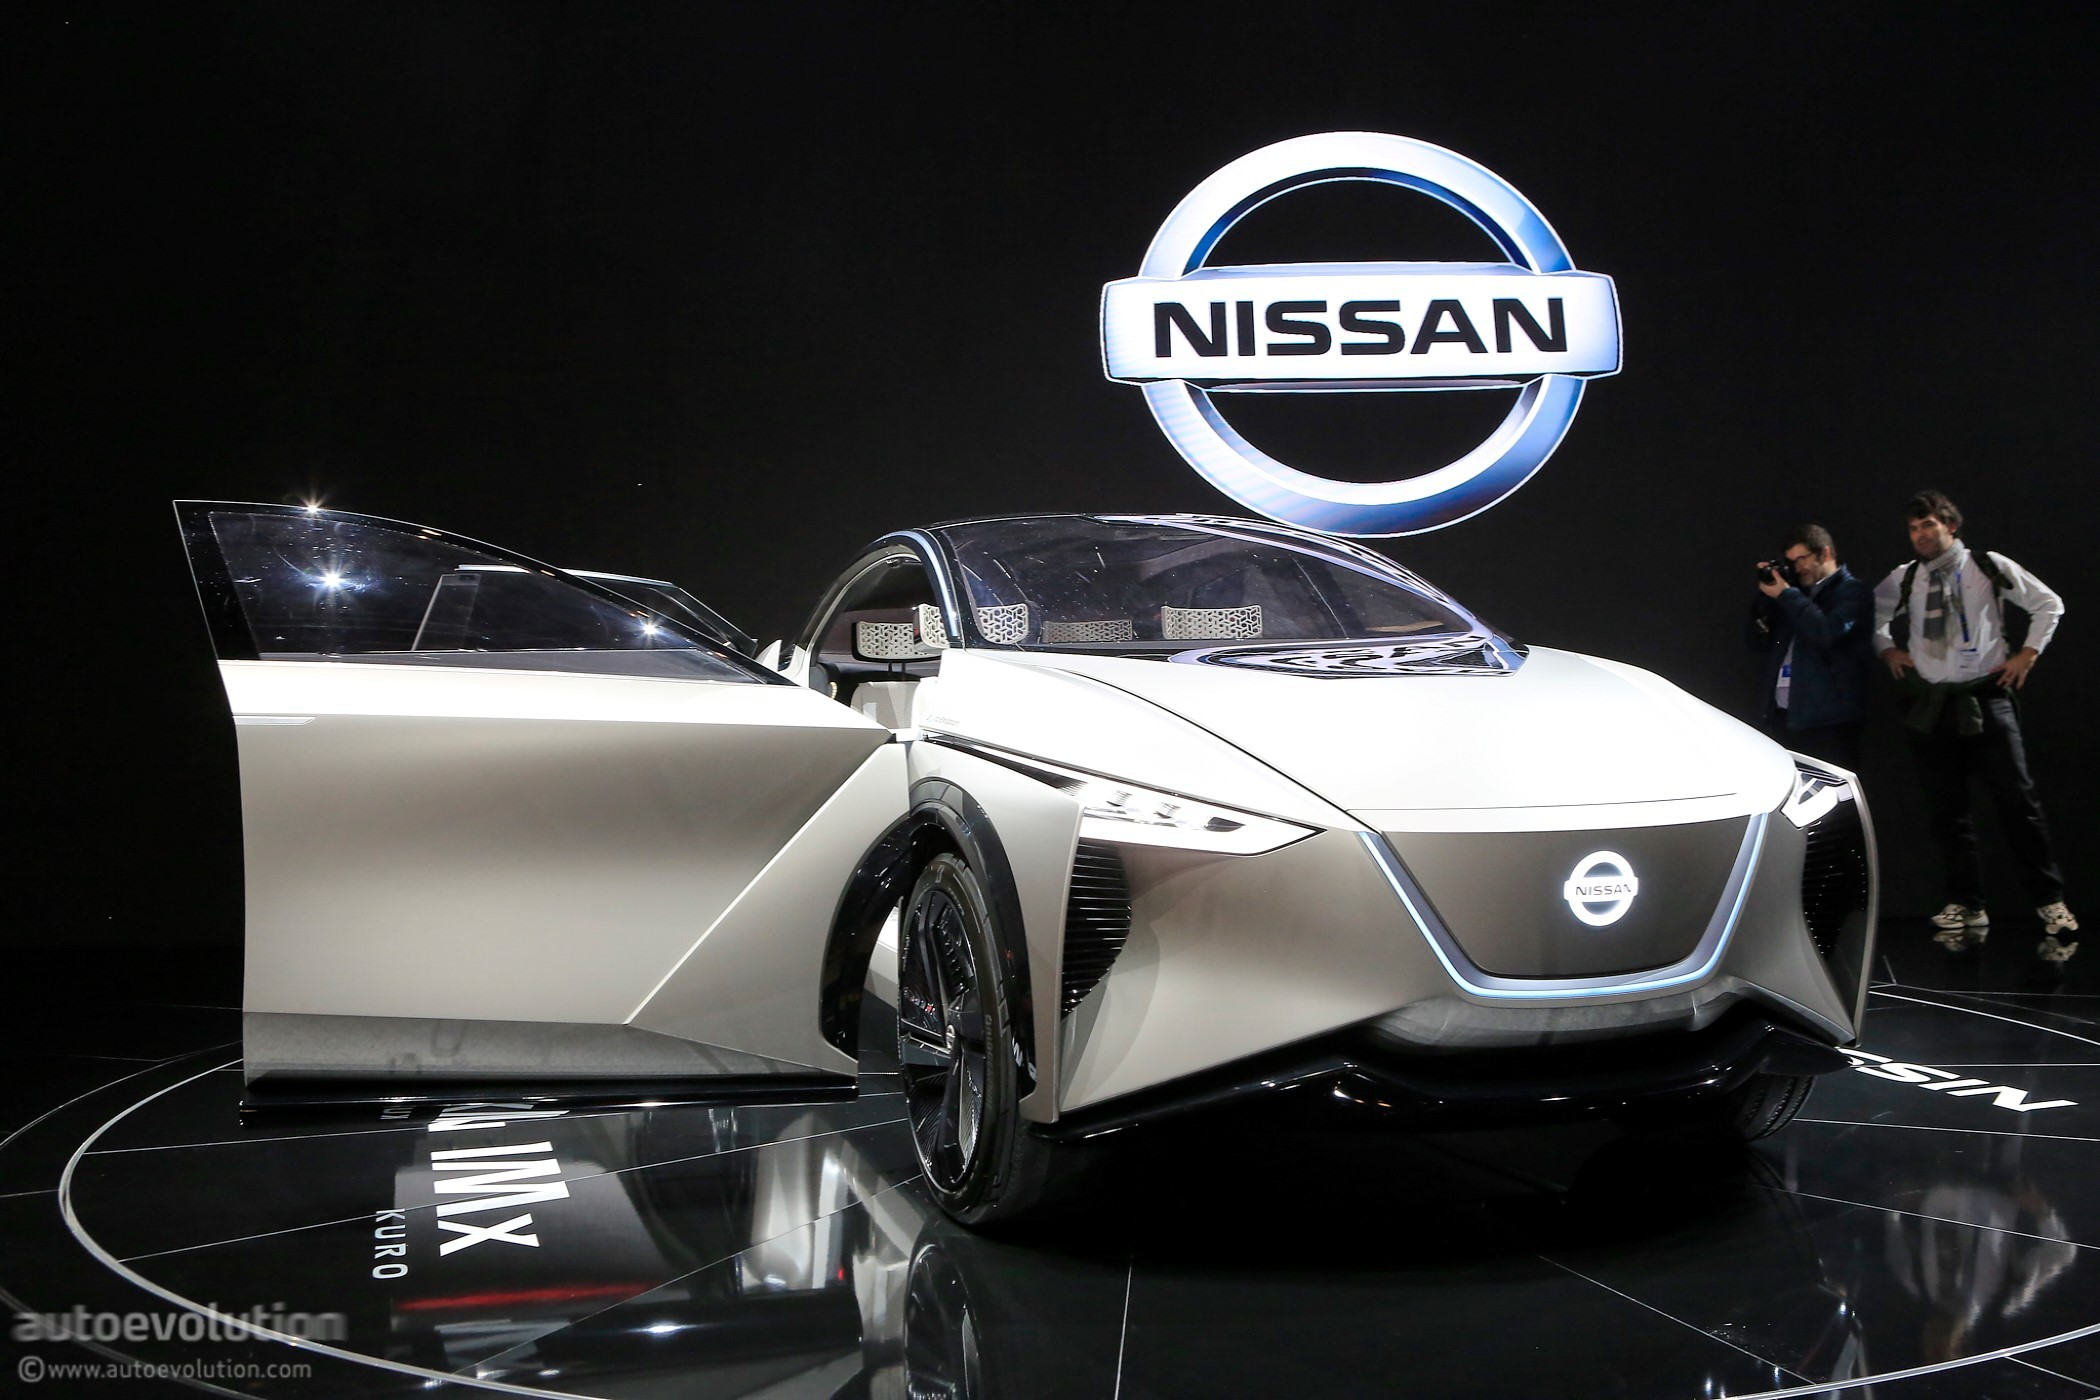 Nissan Expected to Earn FY2018 Earnings of $3.35 Per Share (NSANY)